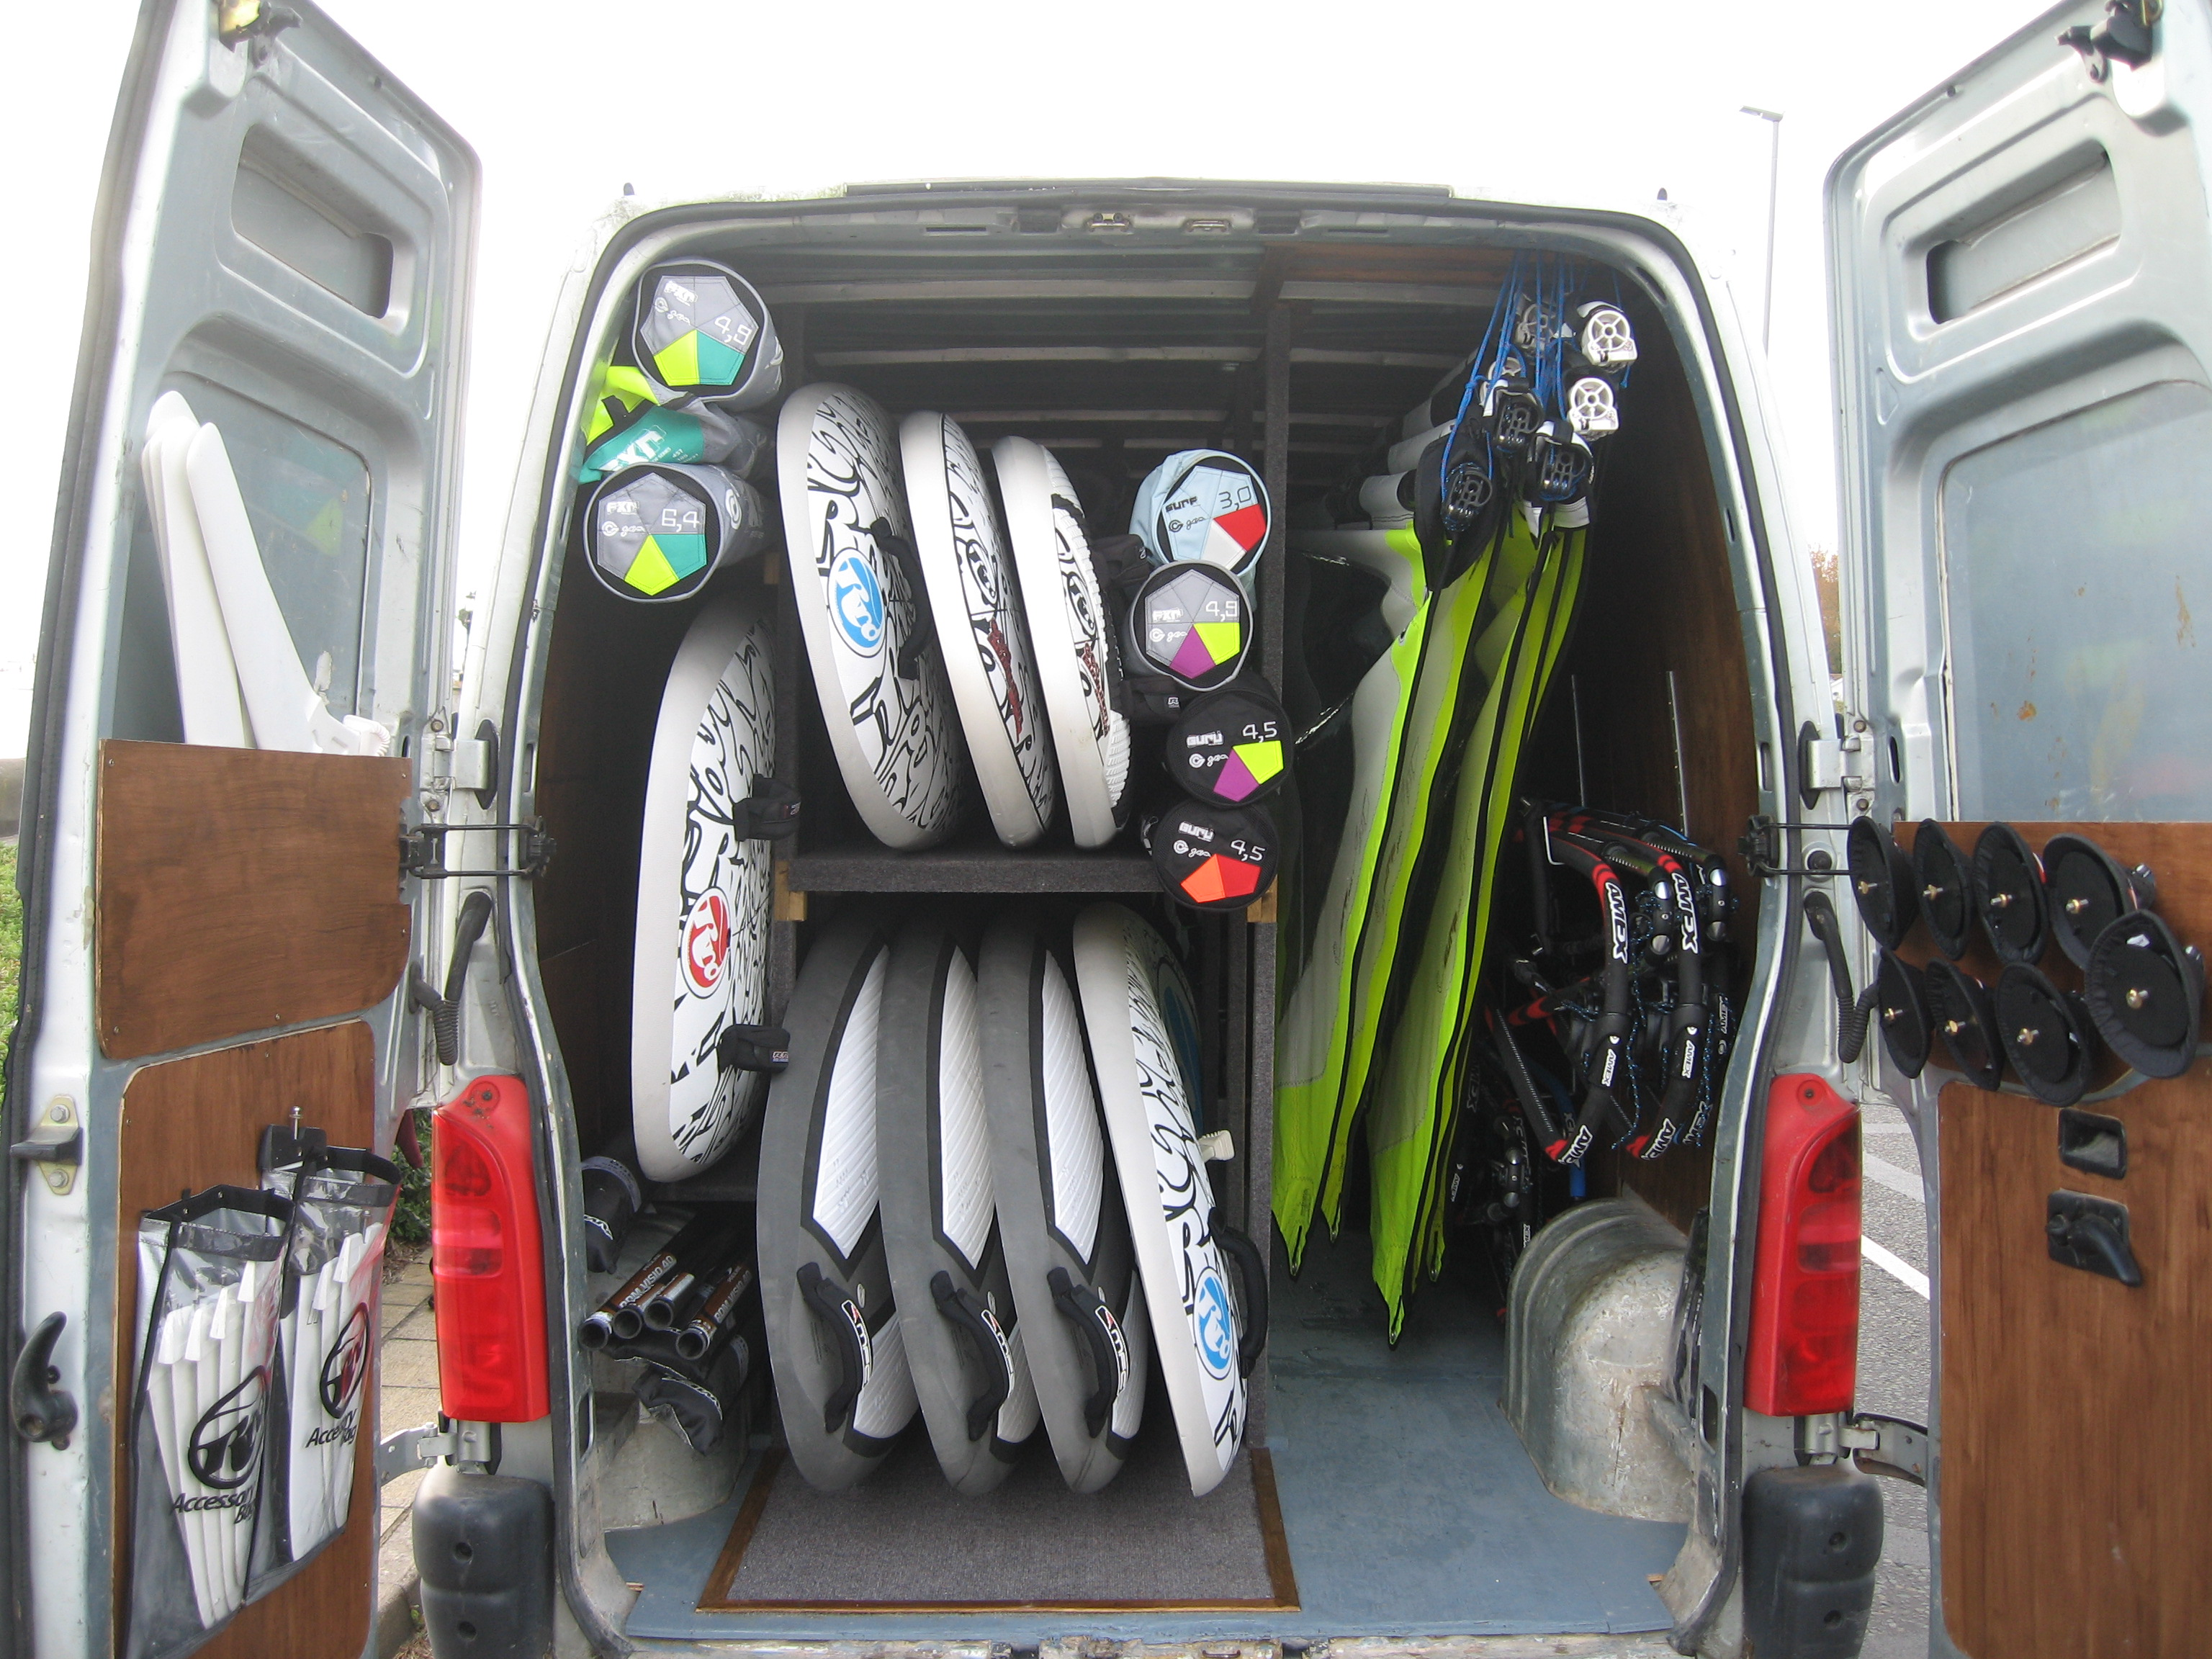 Brand New Windsurfing Equipment at Poole Windsurfing